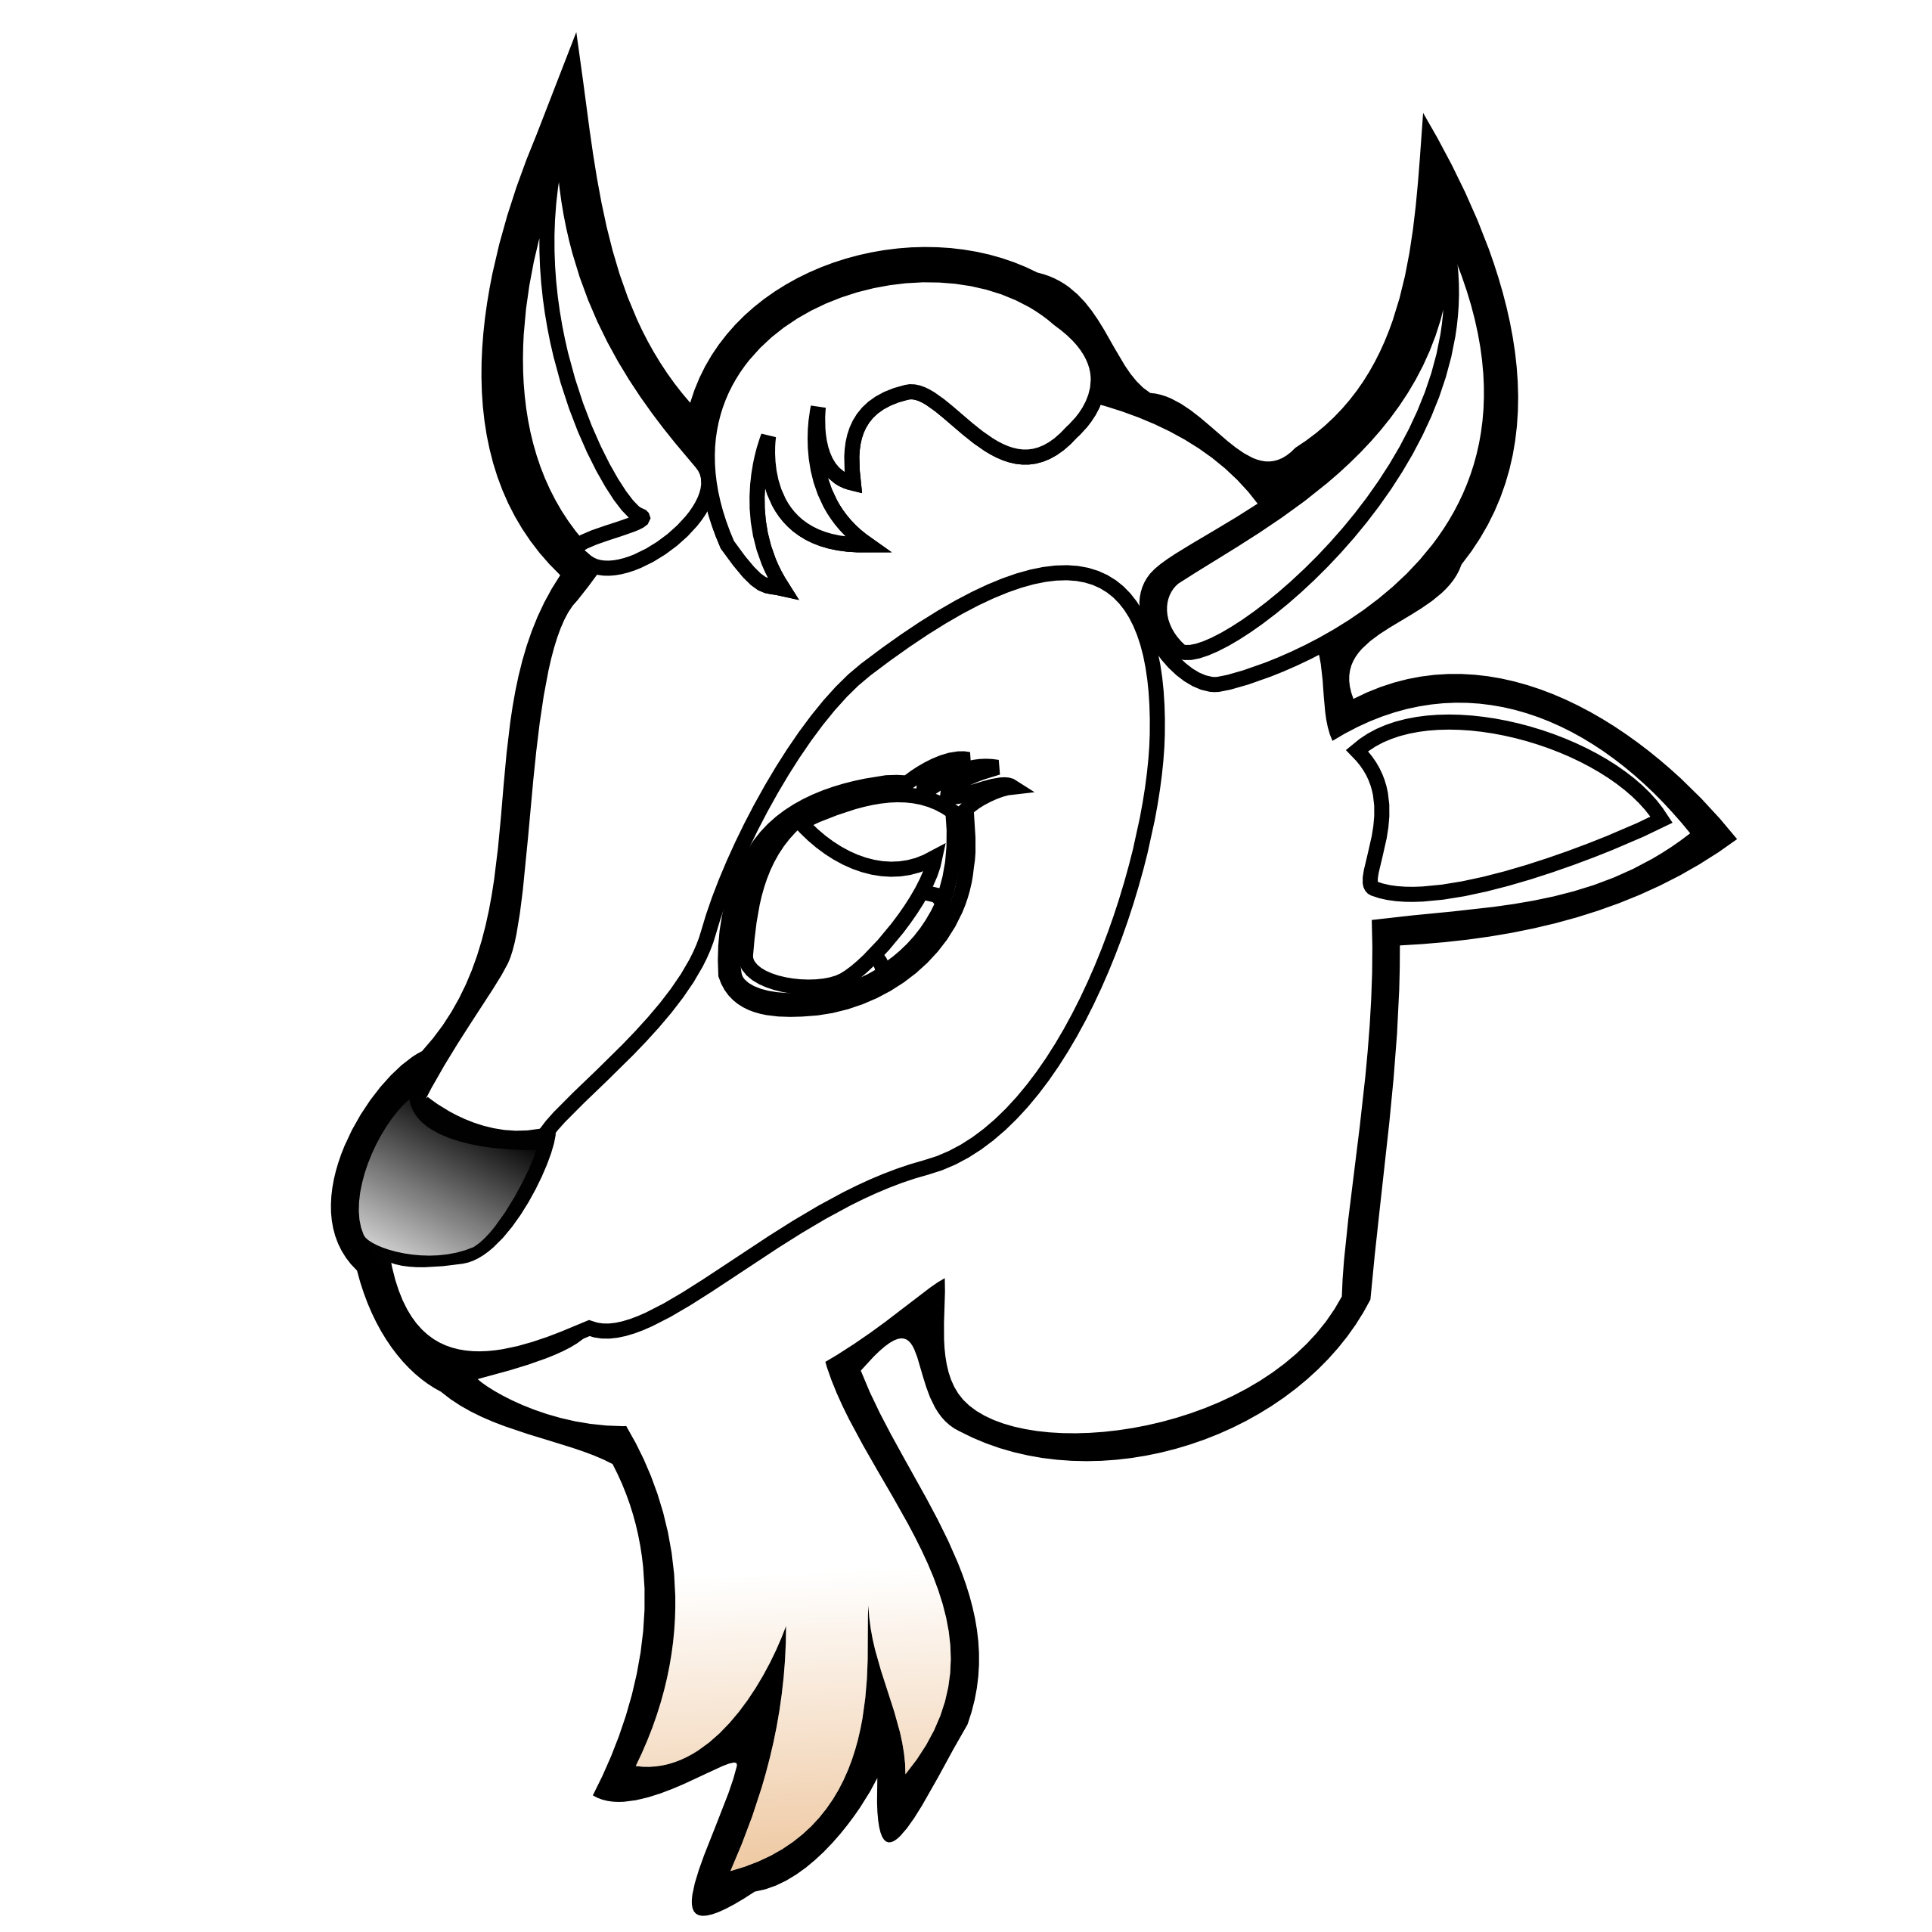 goat%20clipart%20black%20and%20white